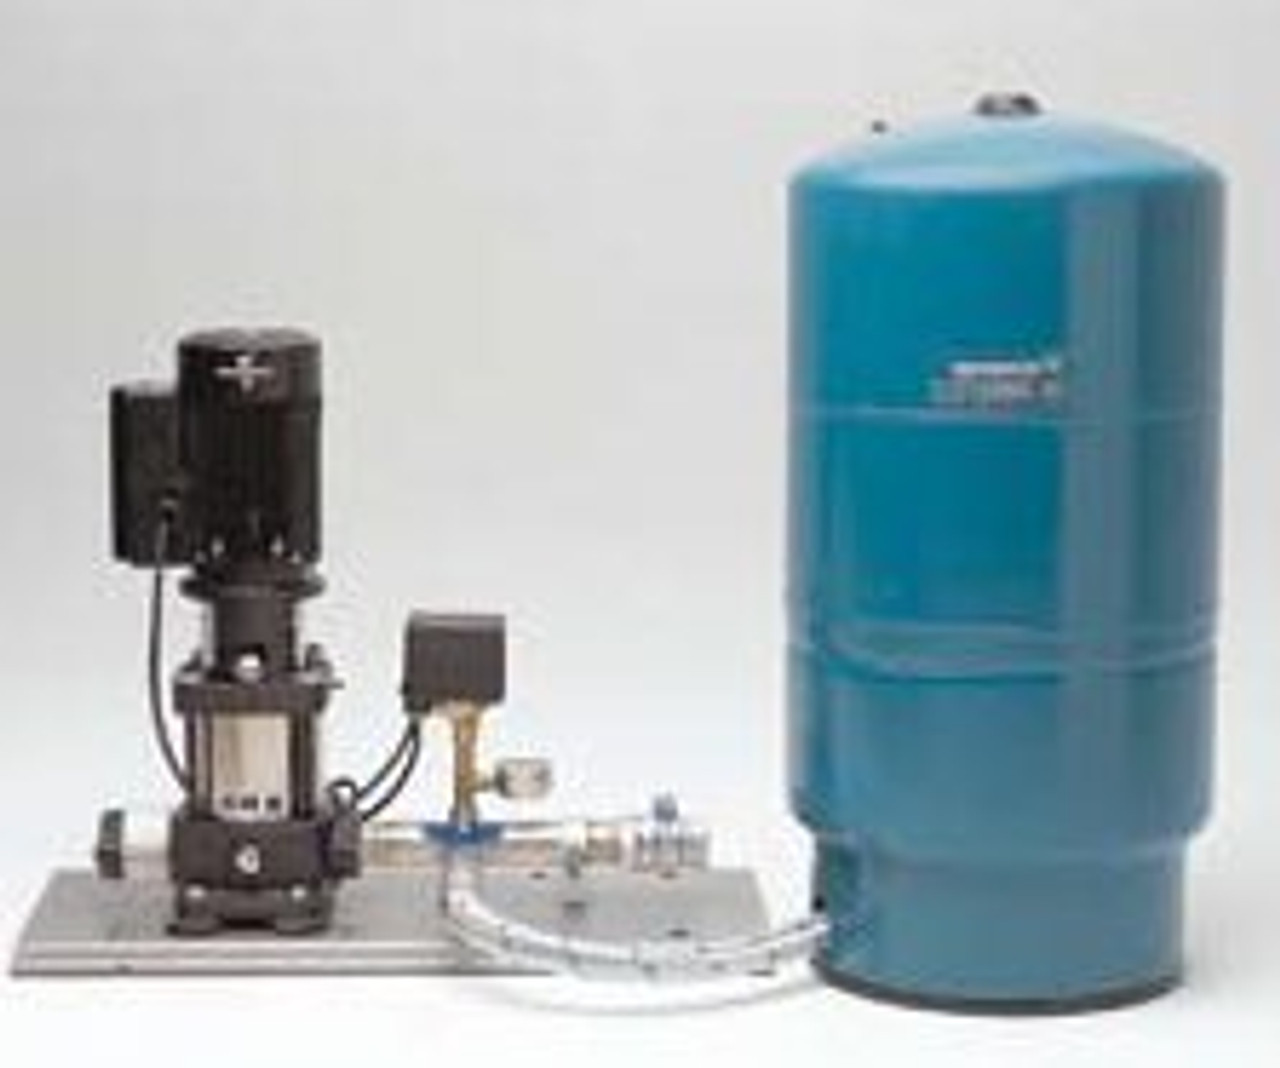 Grundfos CR5-08 Vertical Multistage Pump with 80 litre Pressure Tank and Pressure Switch on a stainless steel base